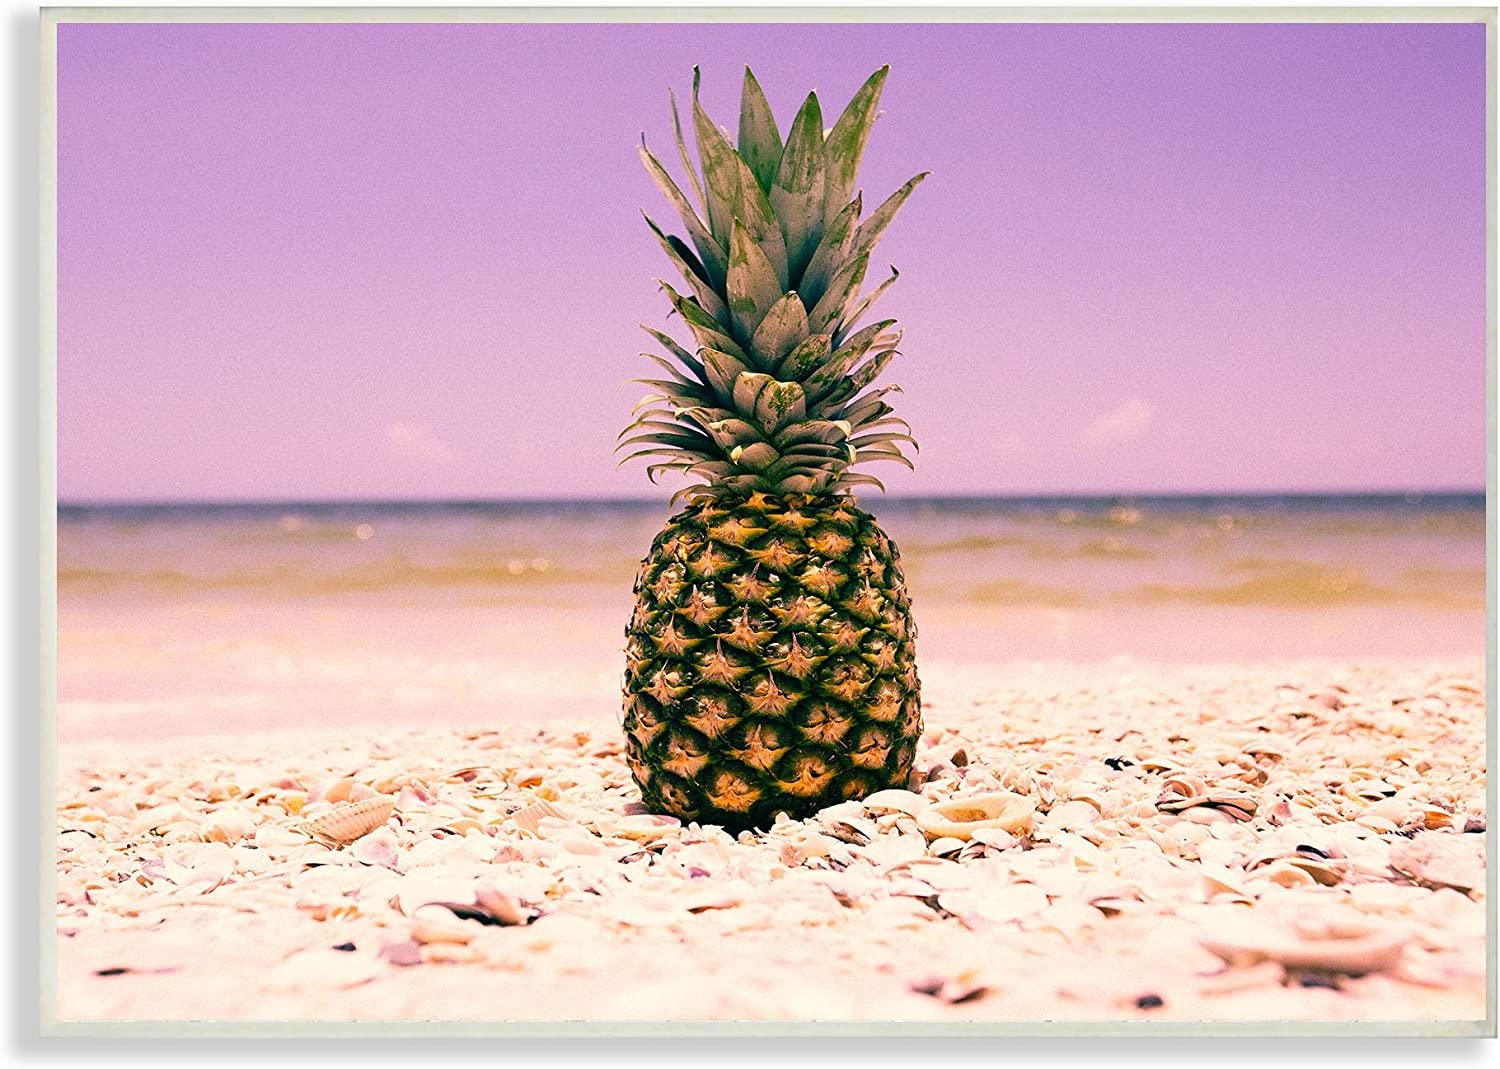 Stupell Home Décor Pink Purple Pineapple Beach Wall Plaque Art, 10 x 0.5 x 15, Proudly Made in USA